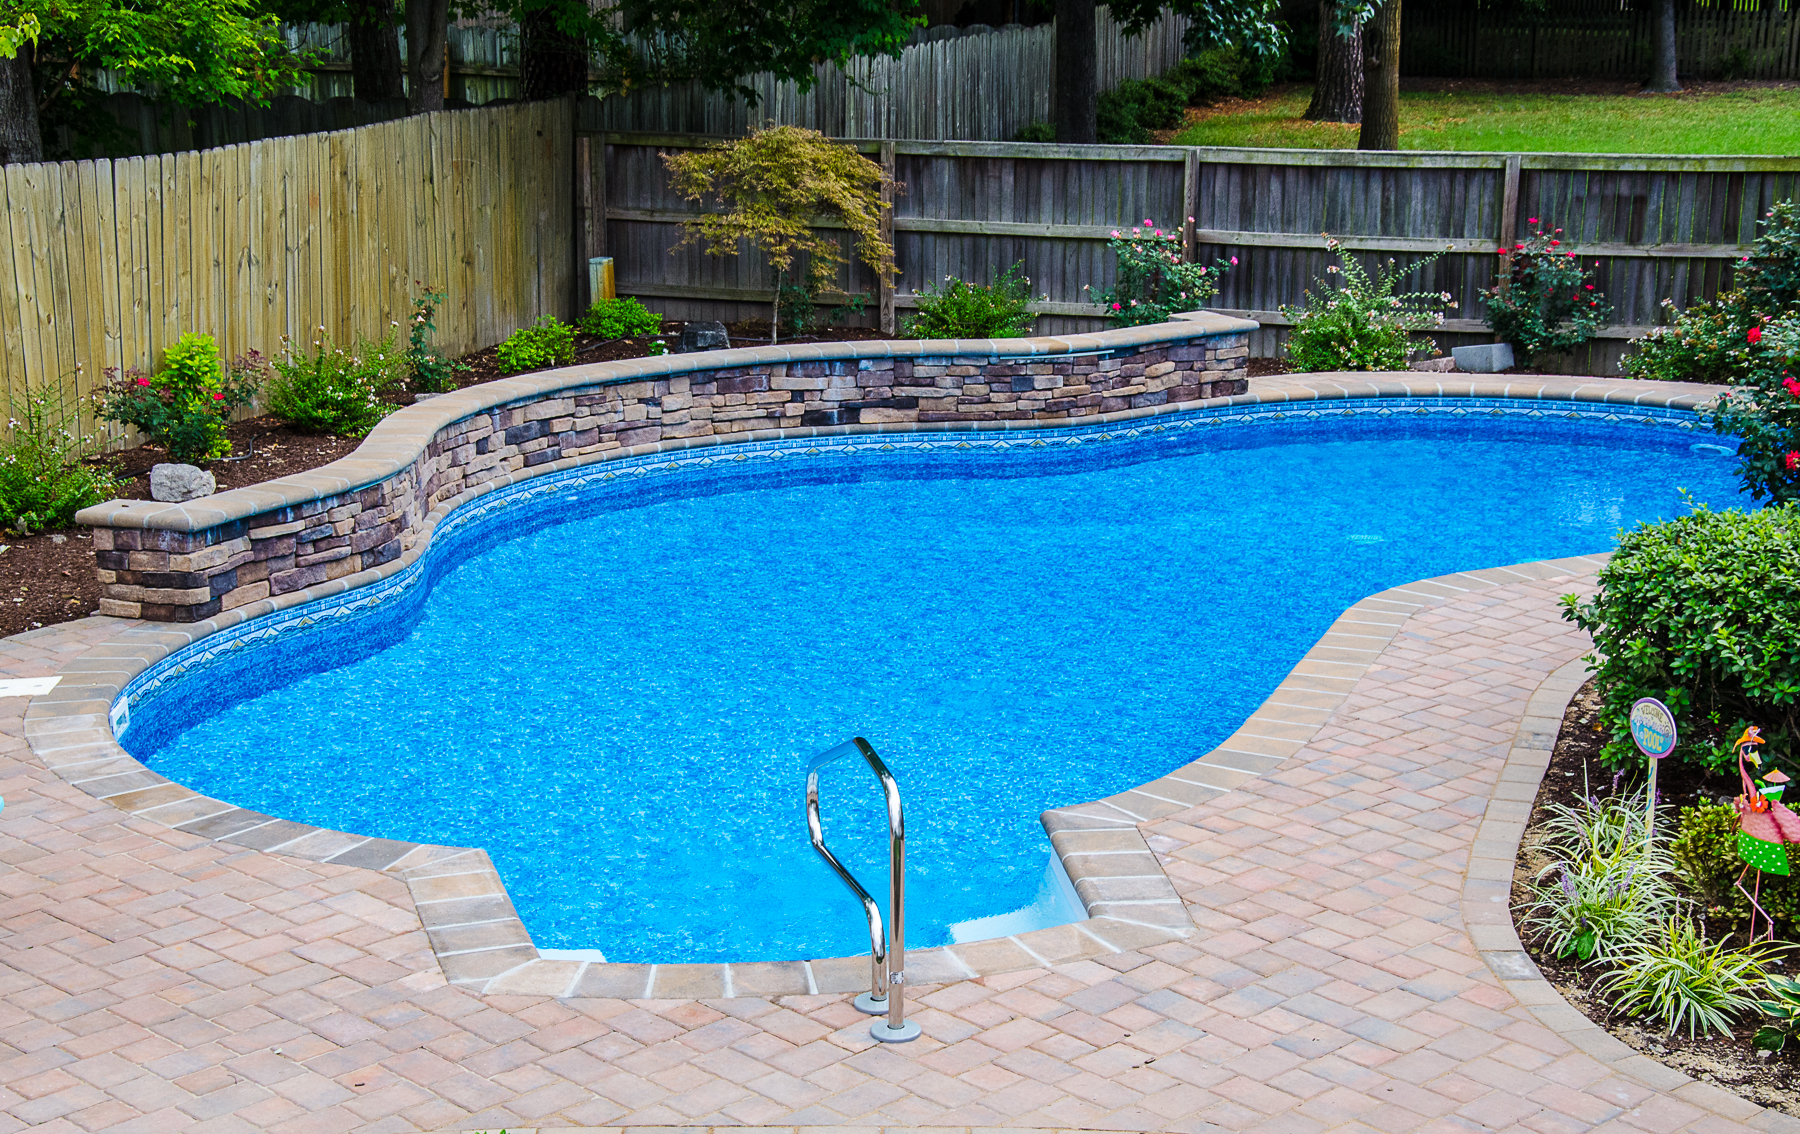 Freeform liner pool 10a Sierra